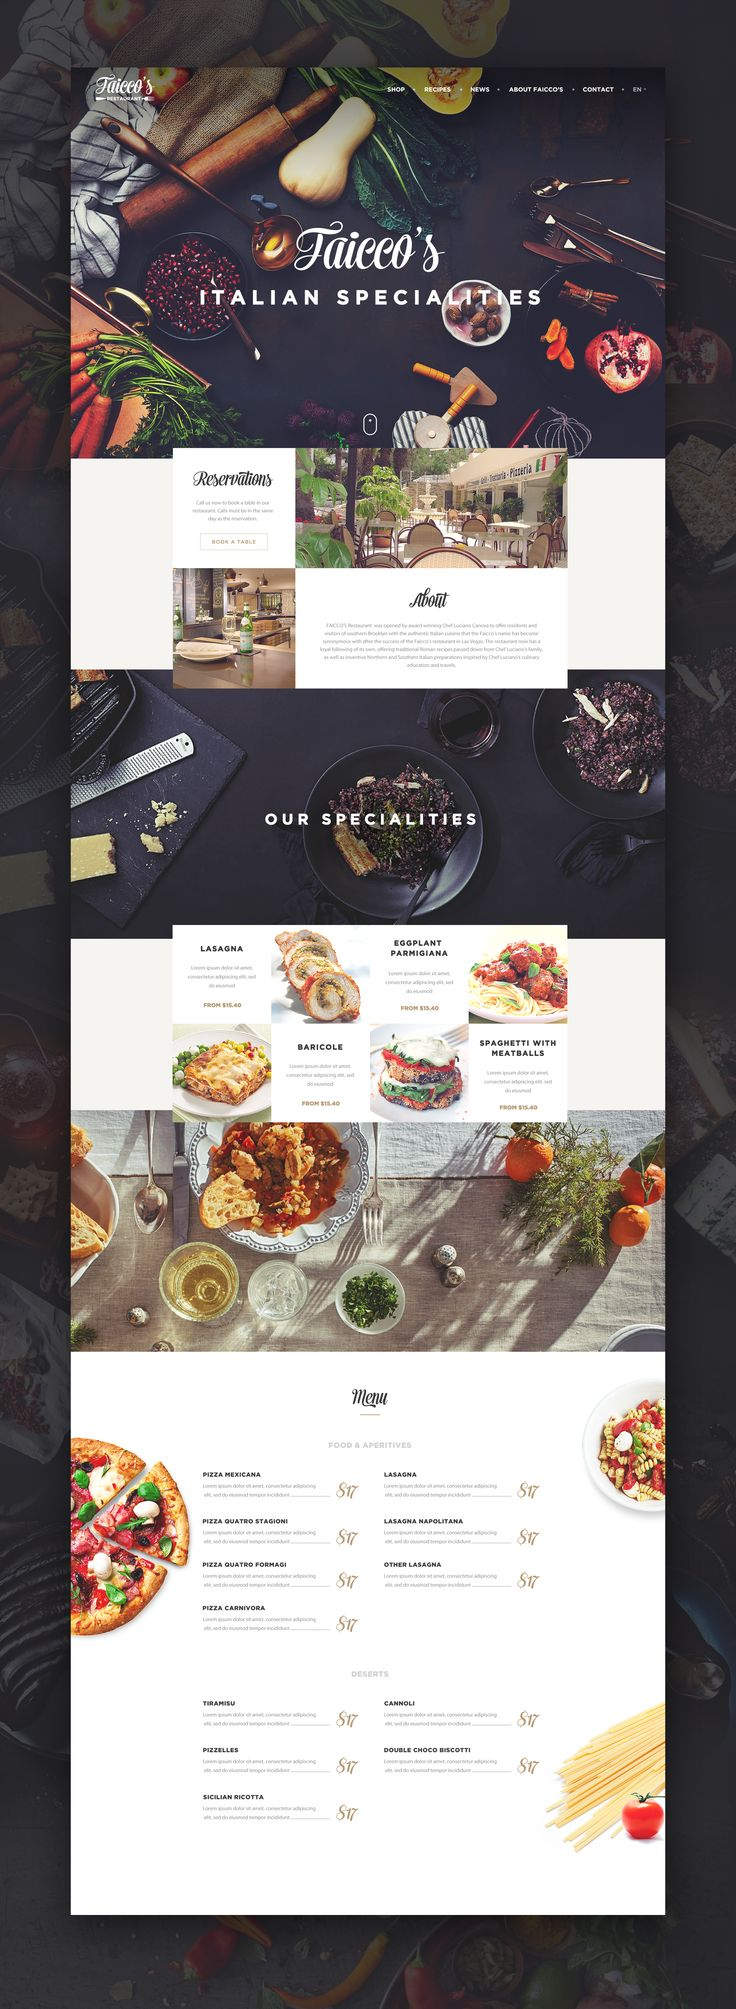 Best images about creative web layout inspiration on